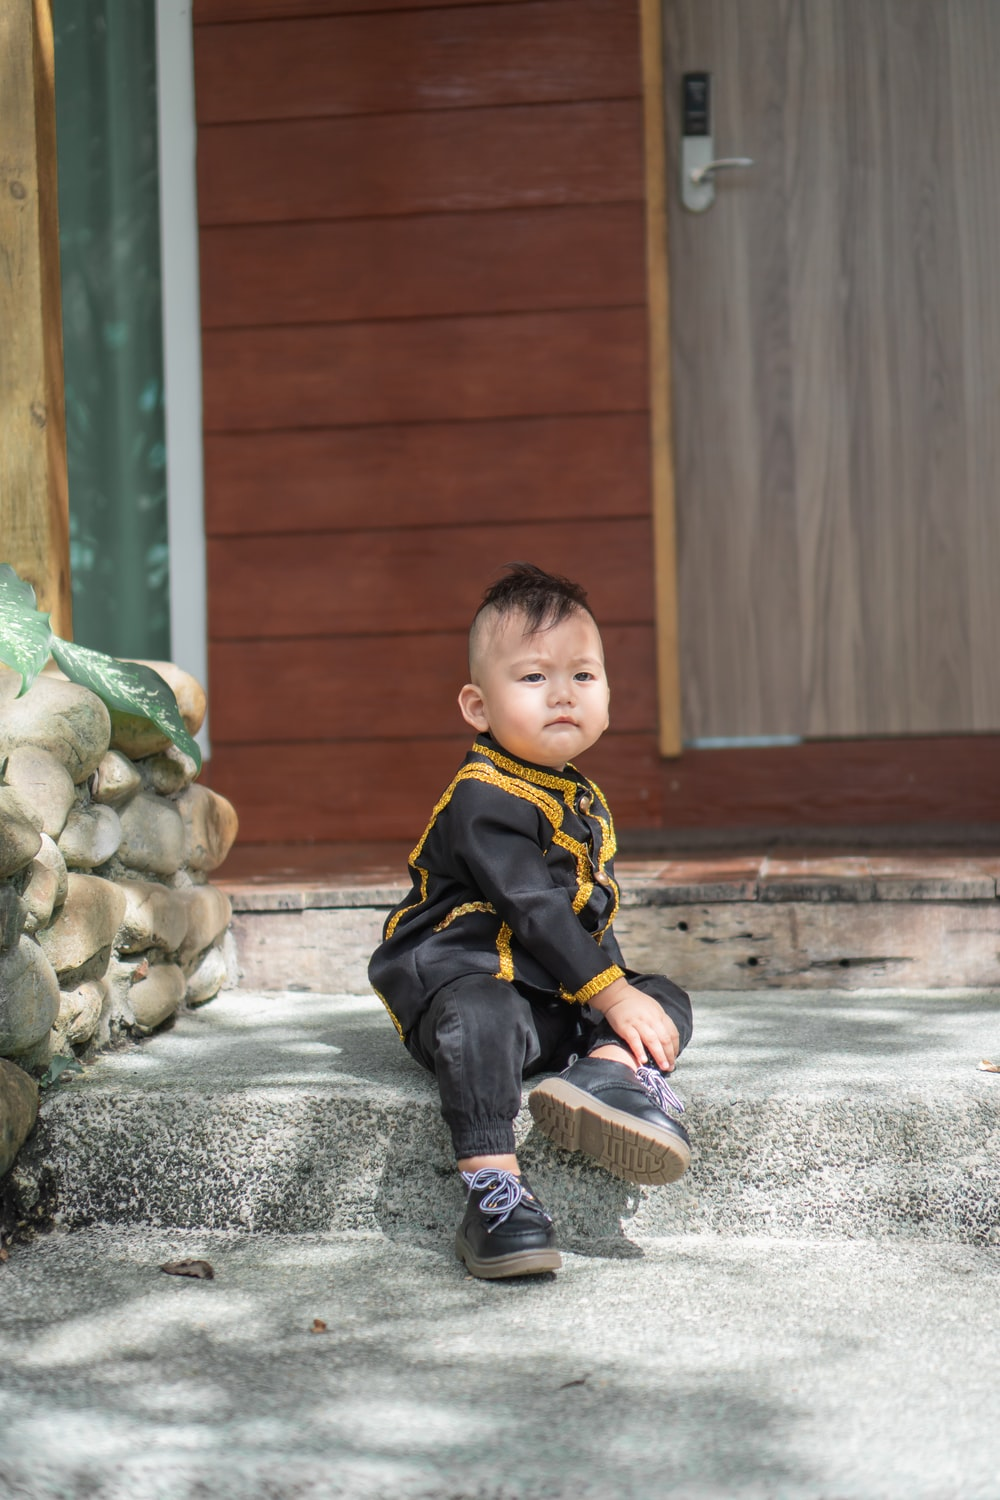 boy in black and yellow jacket sitting on gray concrete floor